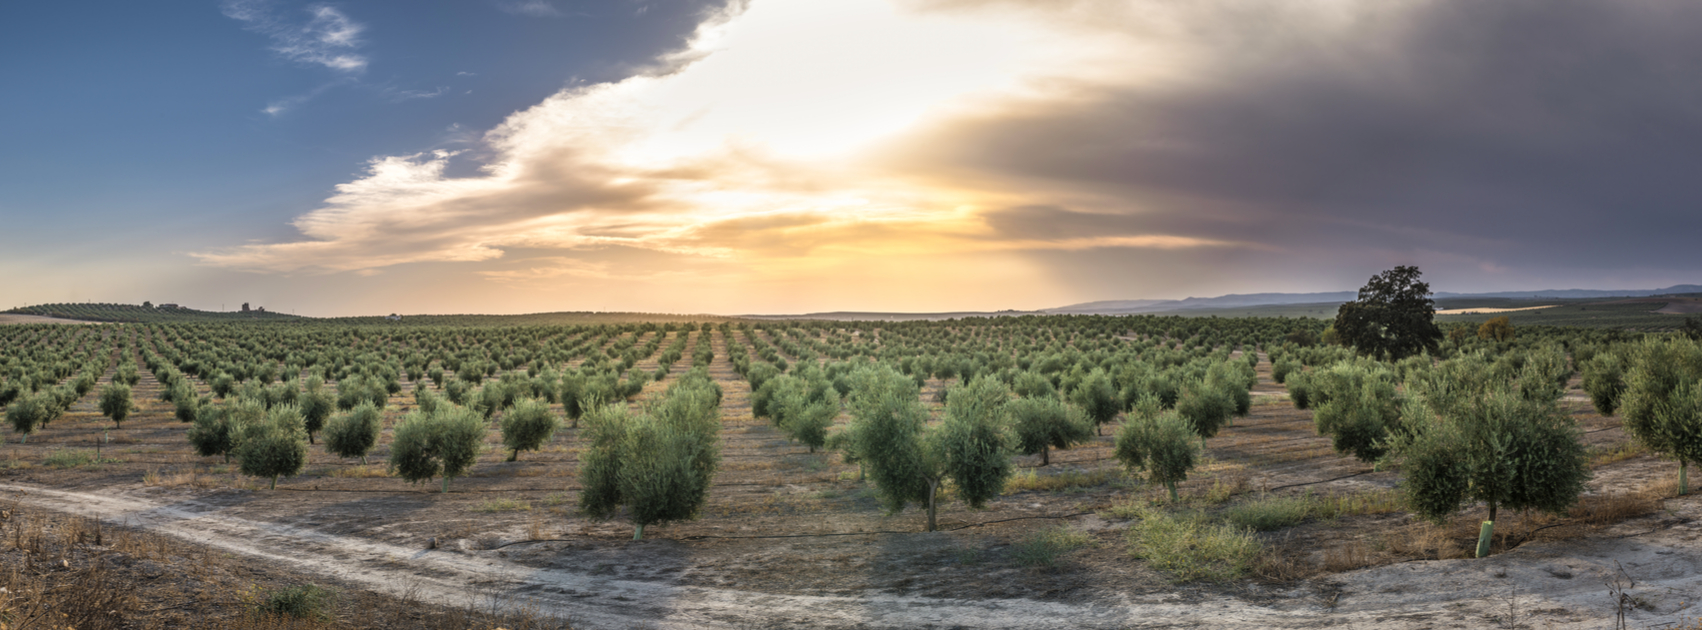 One million trees to be planted in Israel